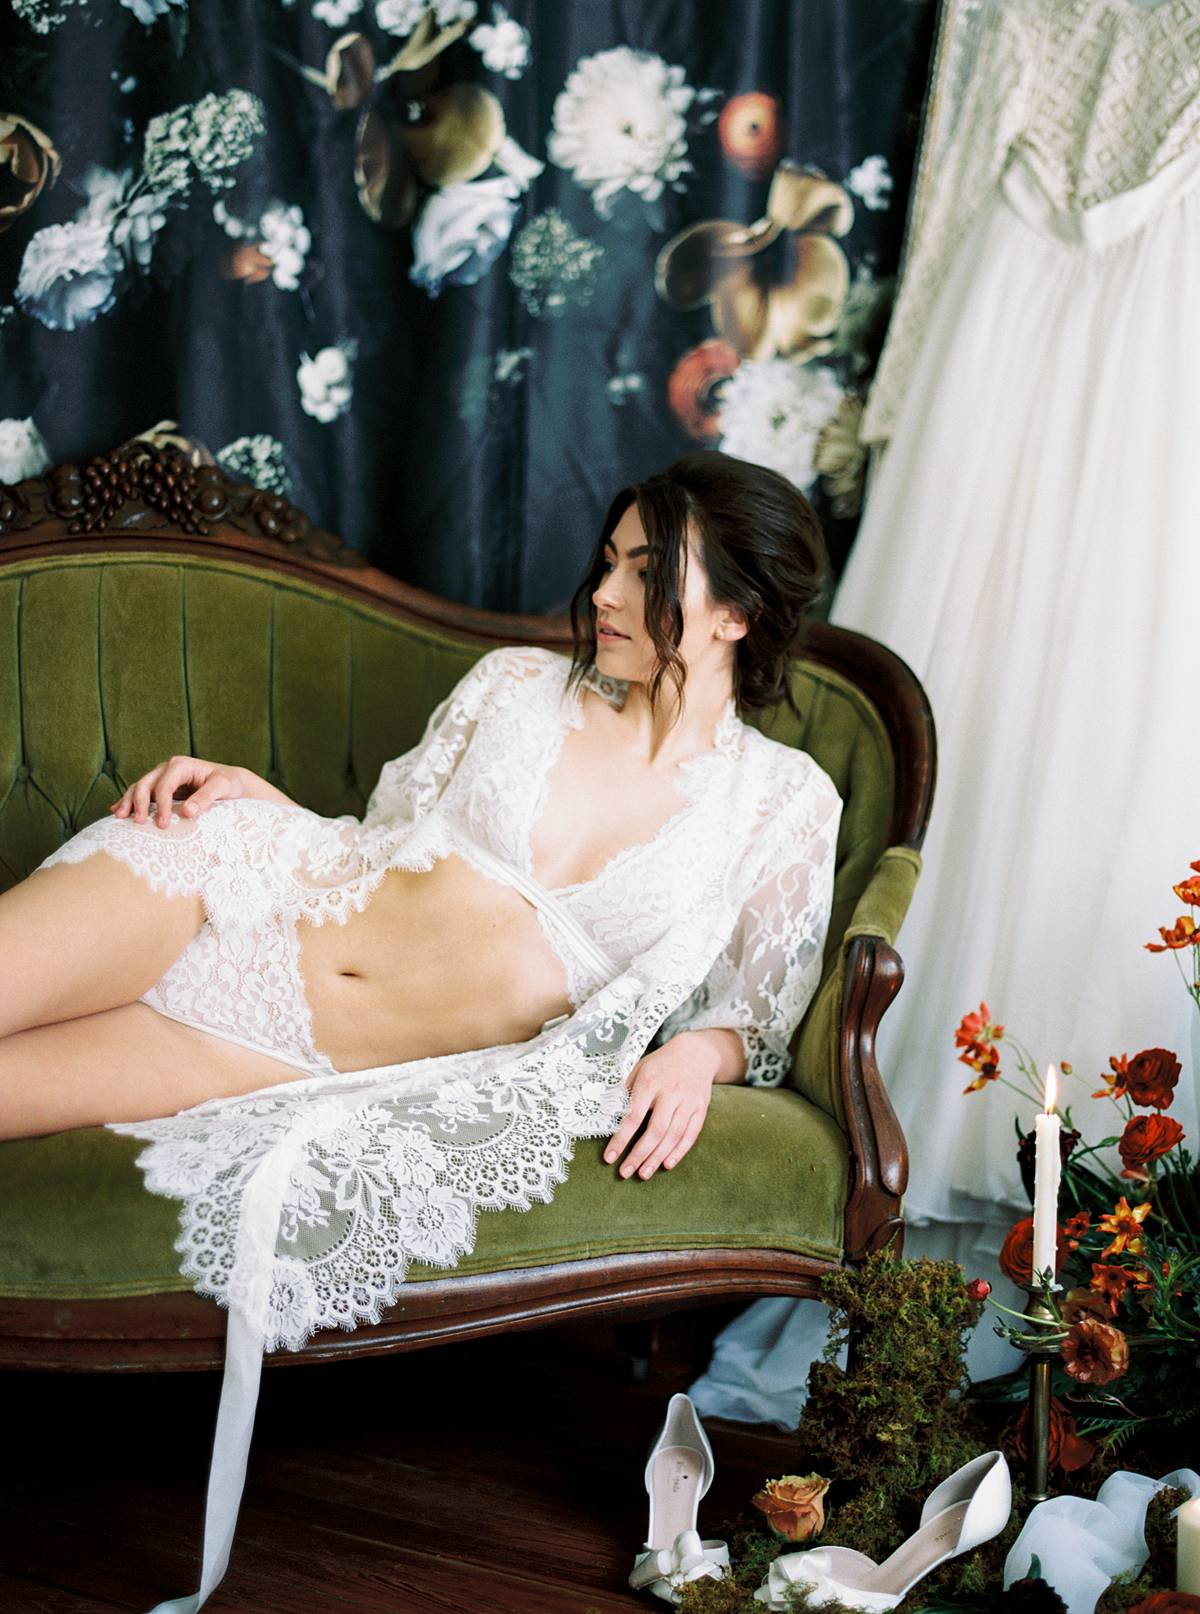 styled charleston bridal boudoir session at wingate plantation in south carolina with lingerie and lace robe and flowers